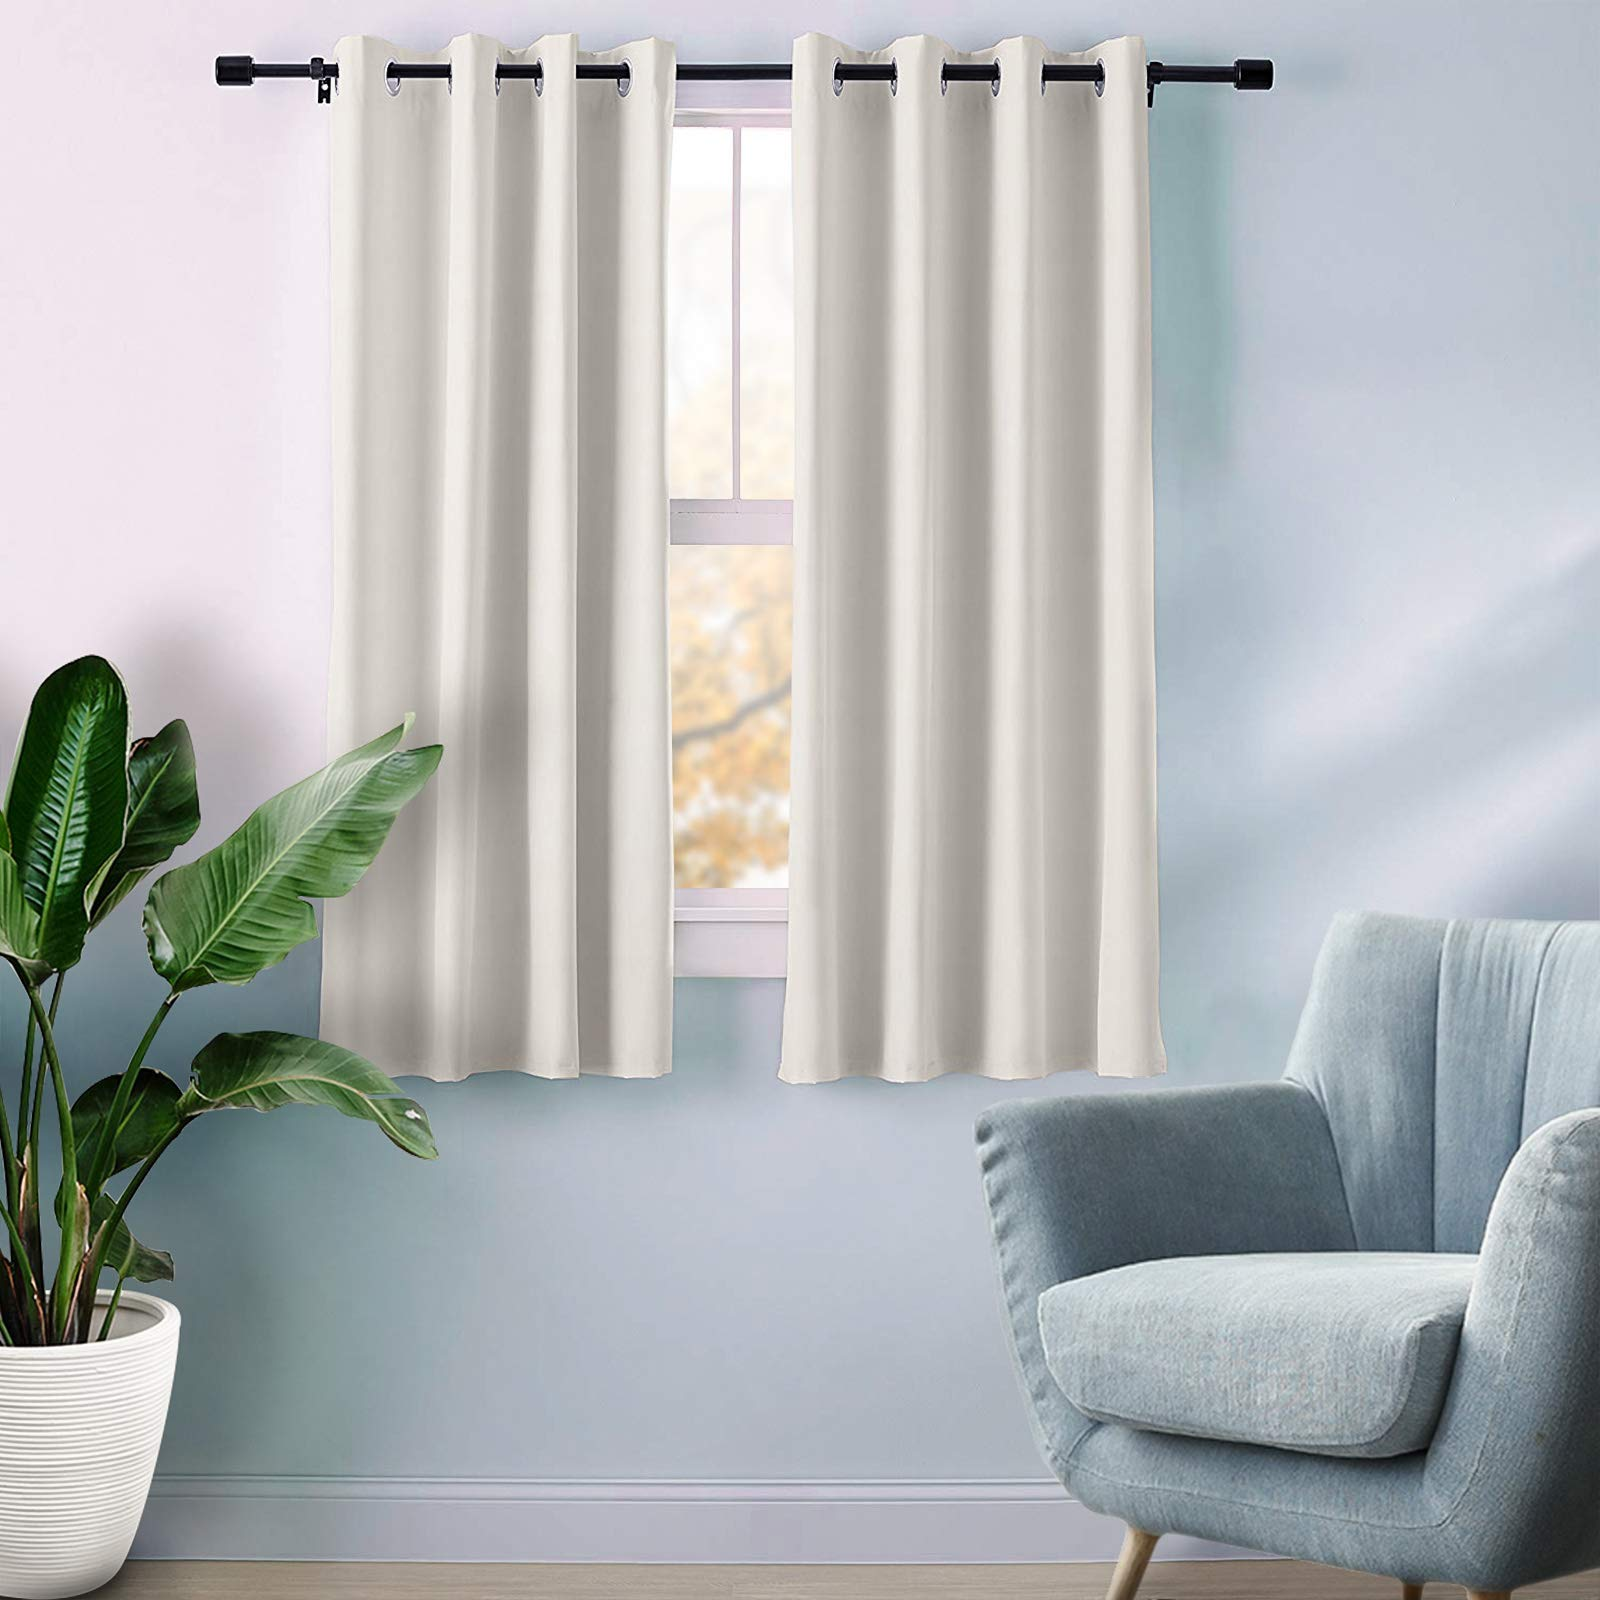 Dark out curtains